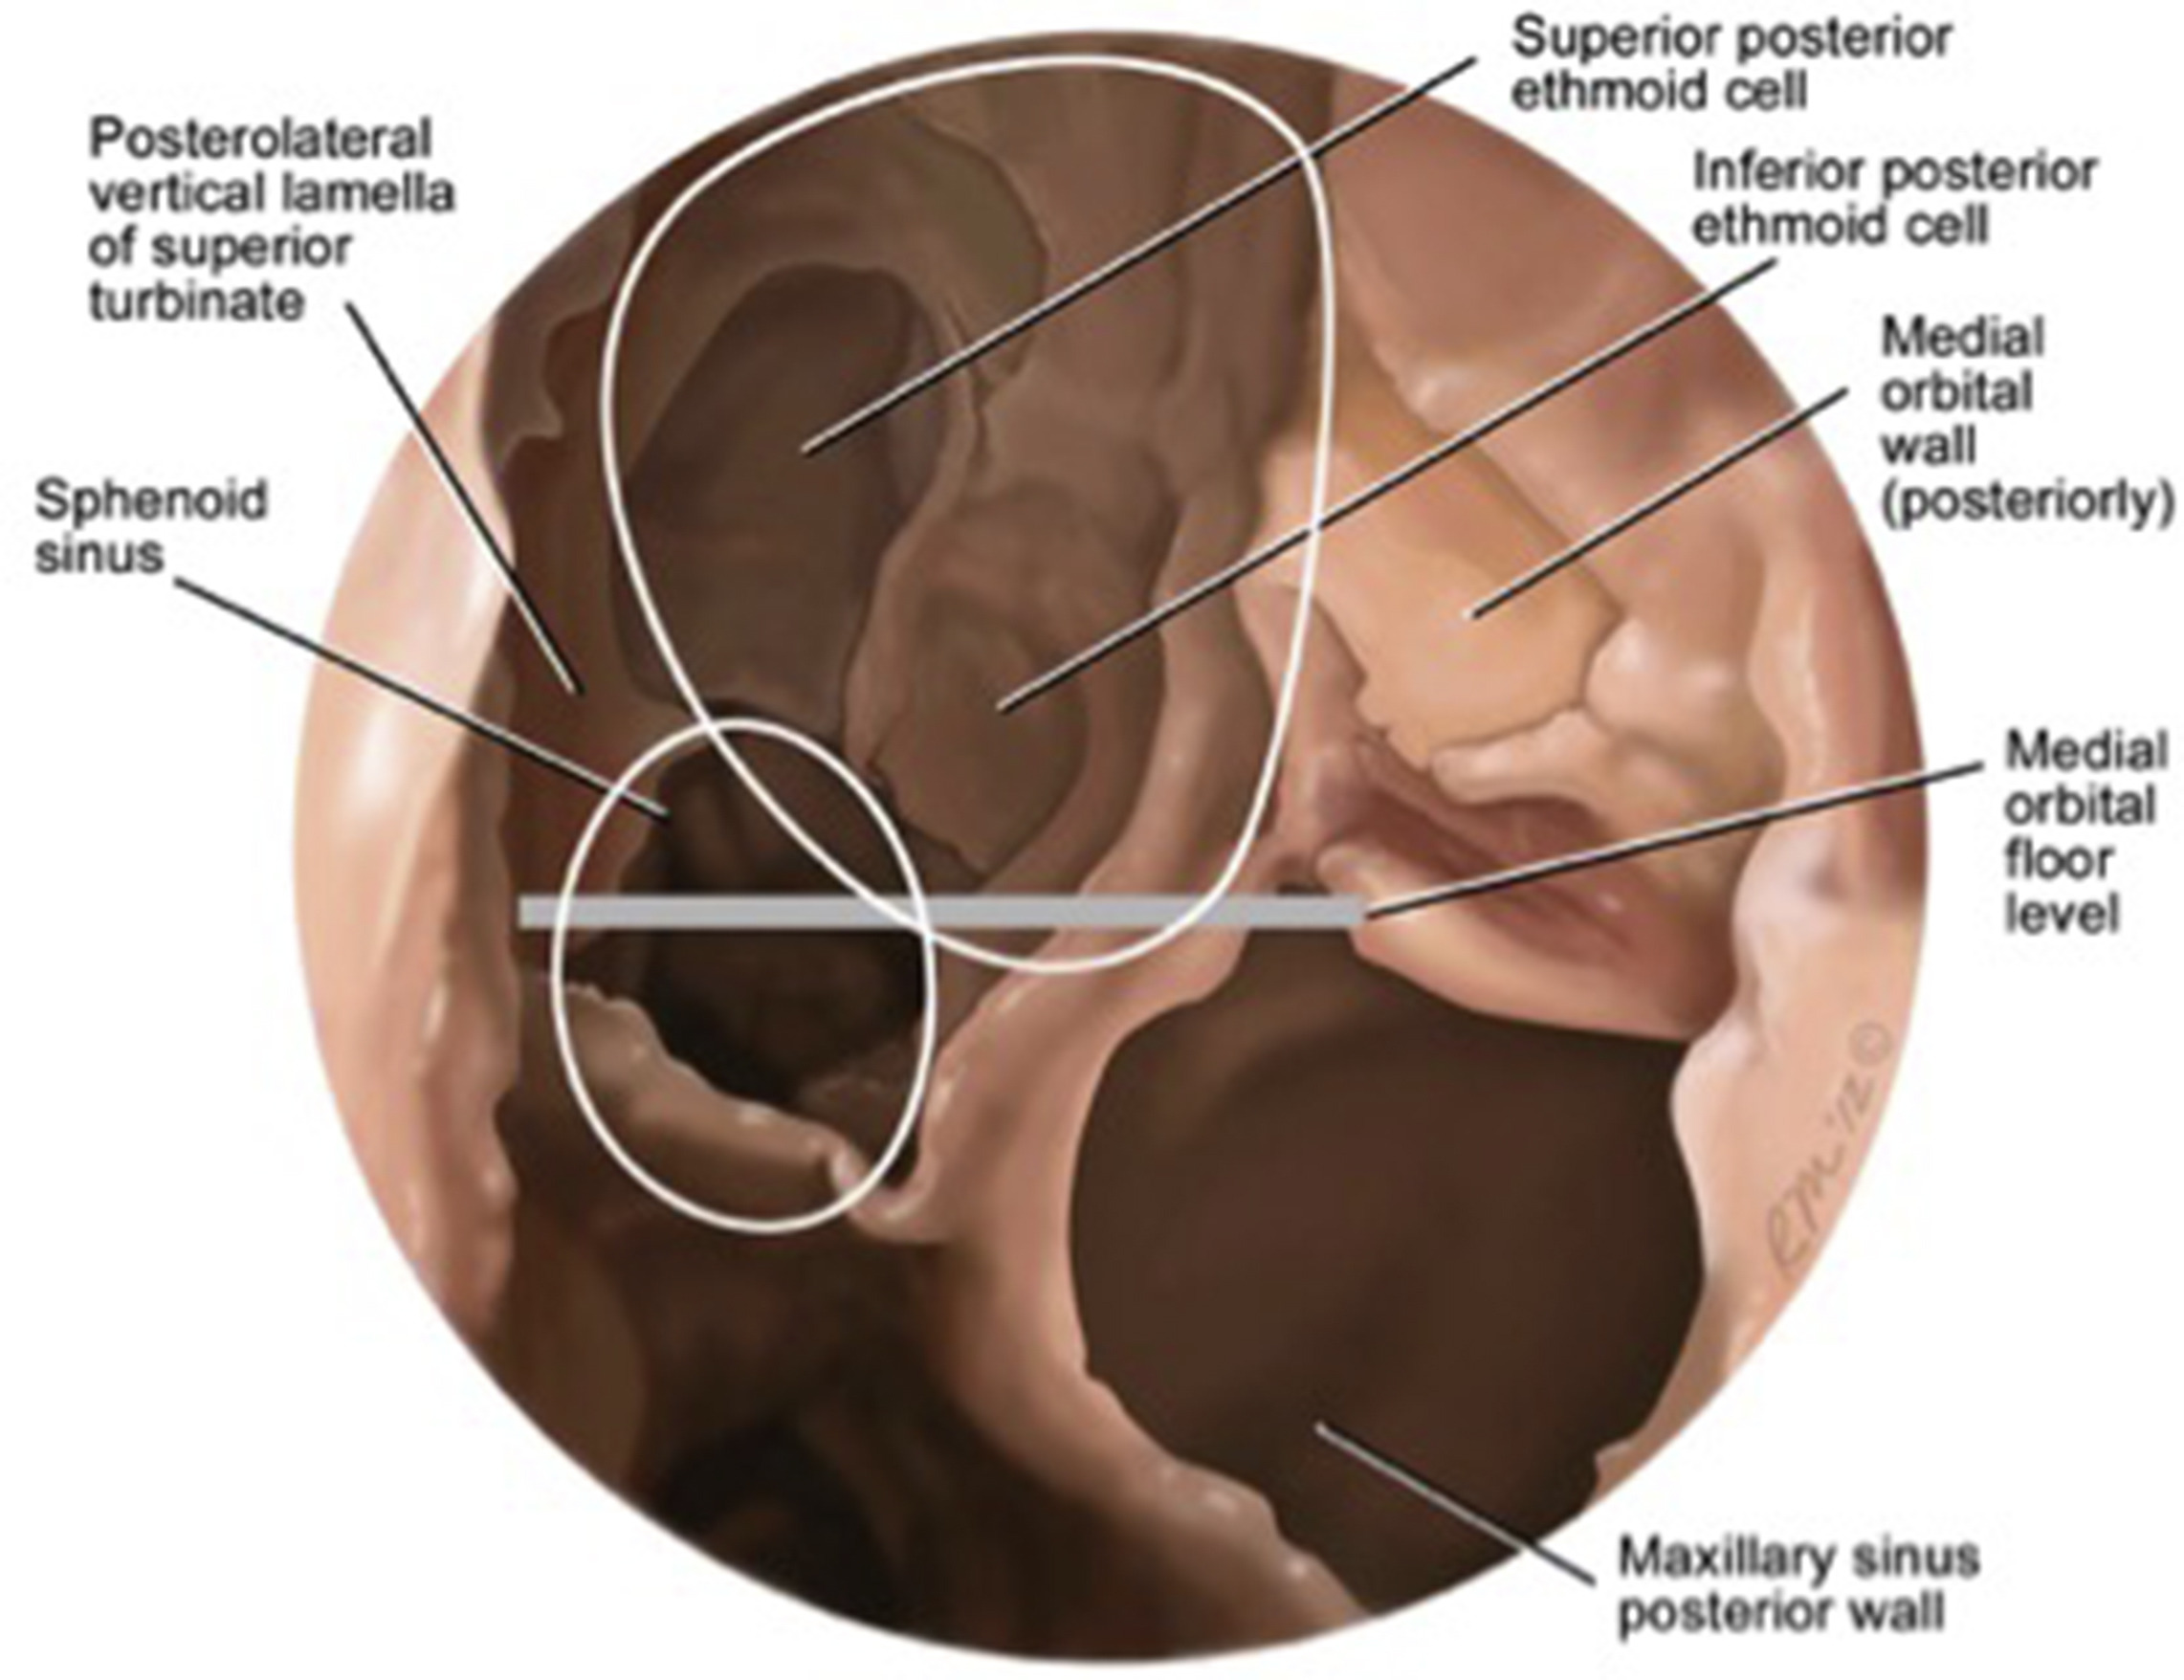 Ear Sinus Anatomy Images Human Body Anatomy